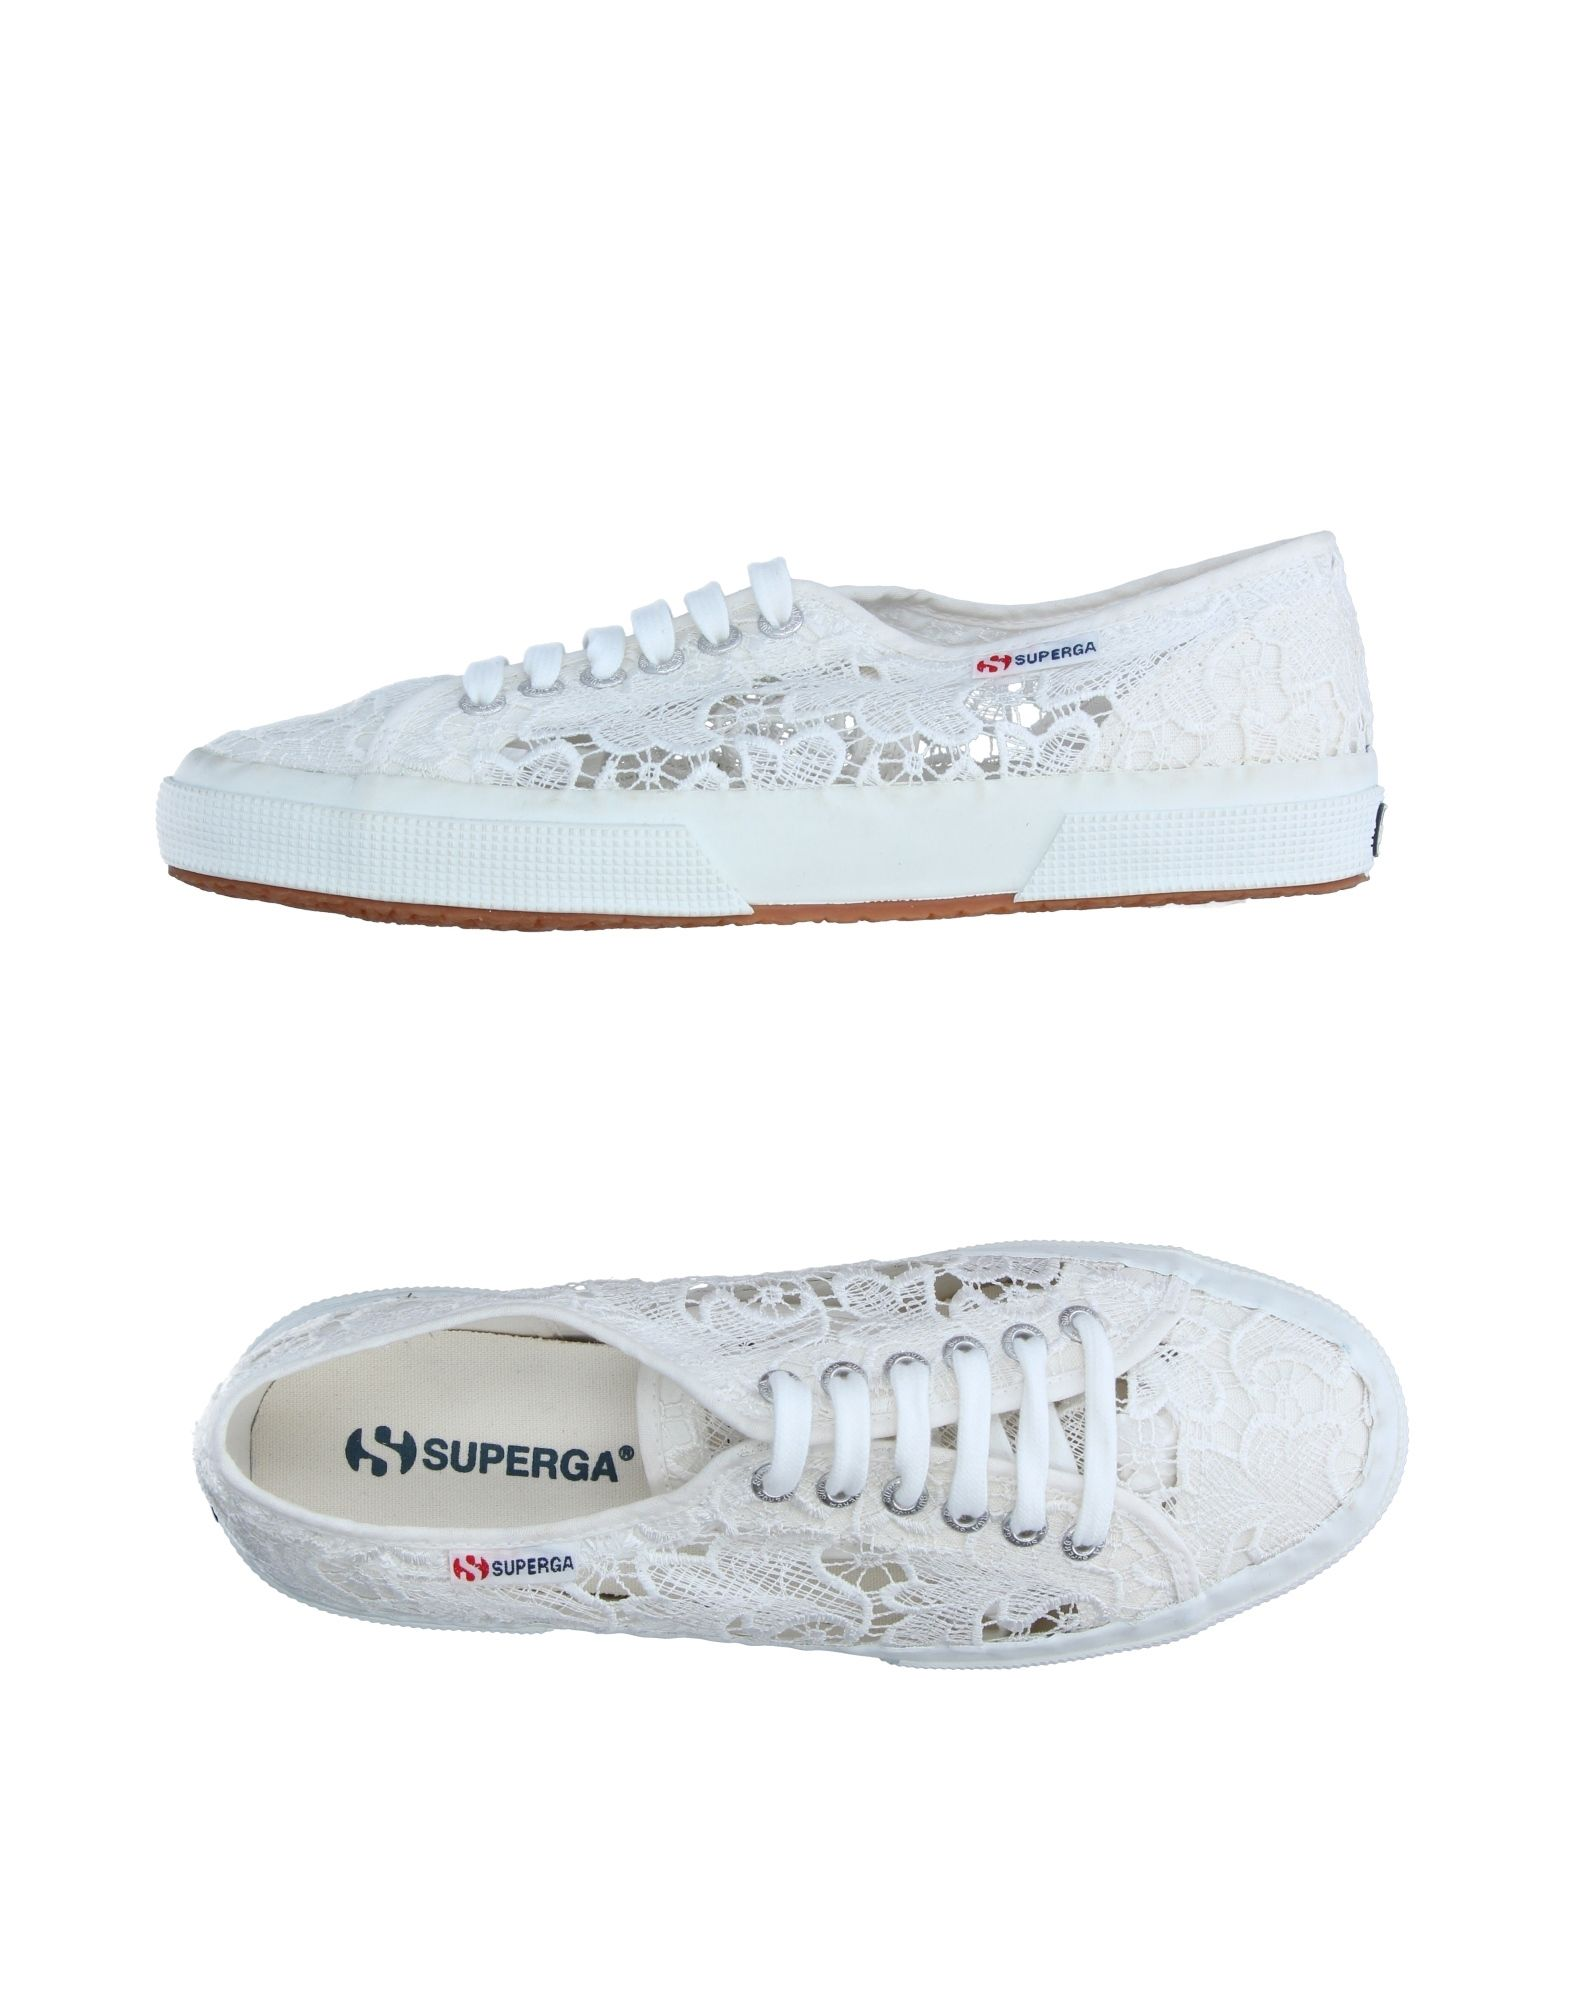 Superga®  Sneakers Damen  11281221FS  Superga® 6f7f44